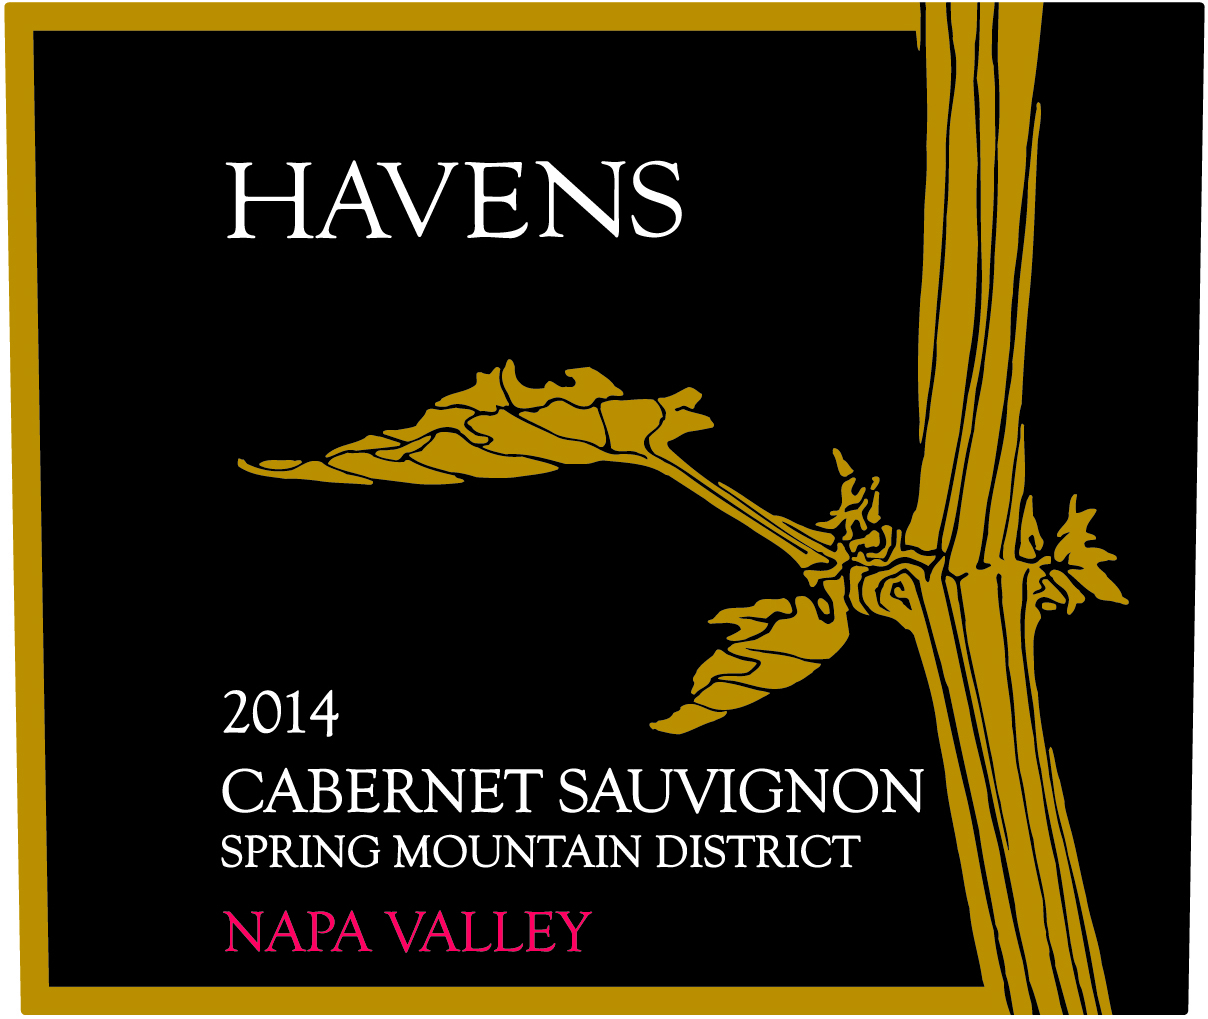 2013 Haven's Cabernet Sauvignon Spring Mountain